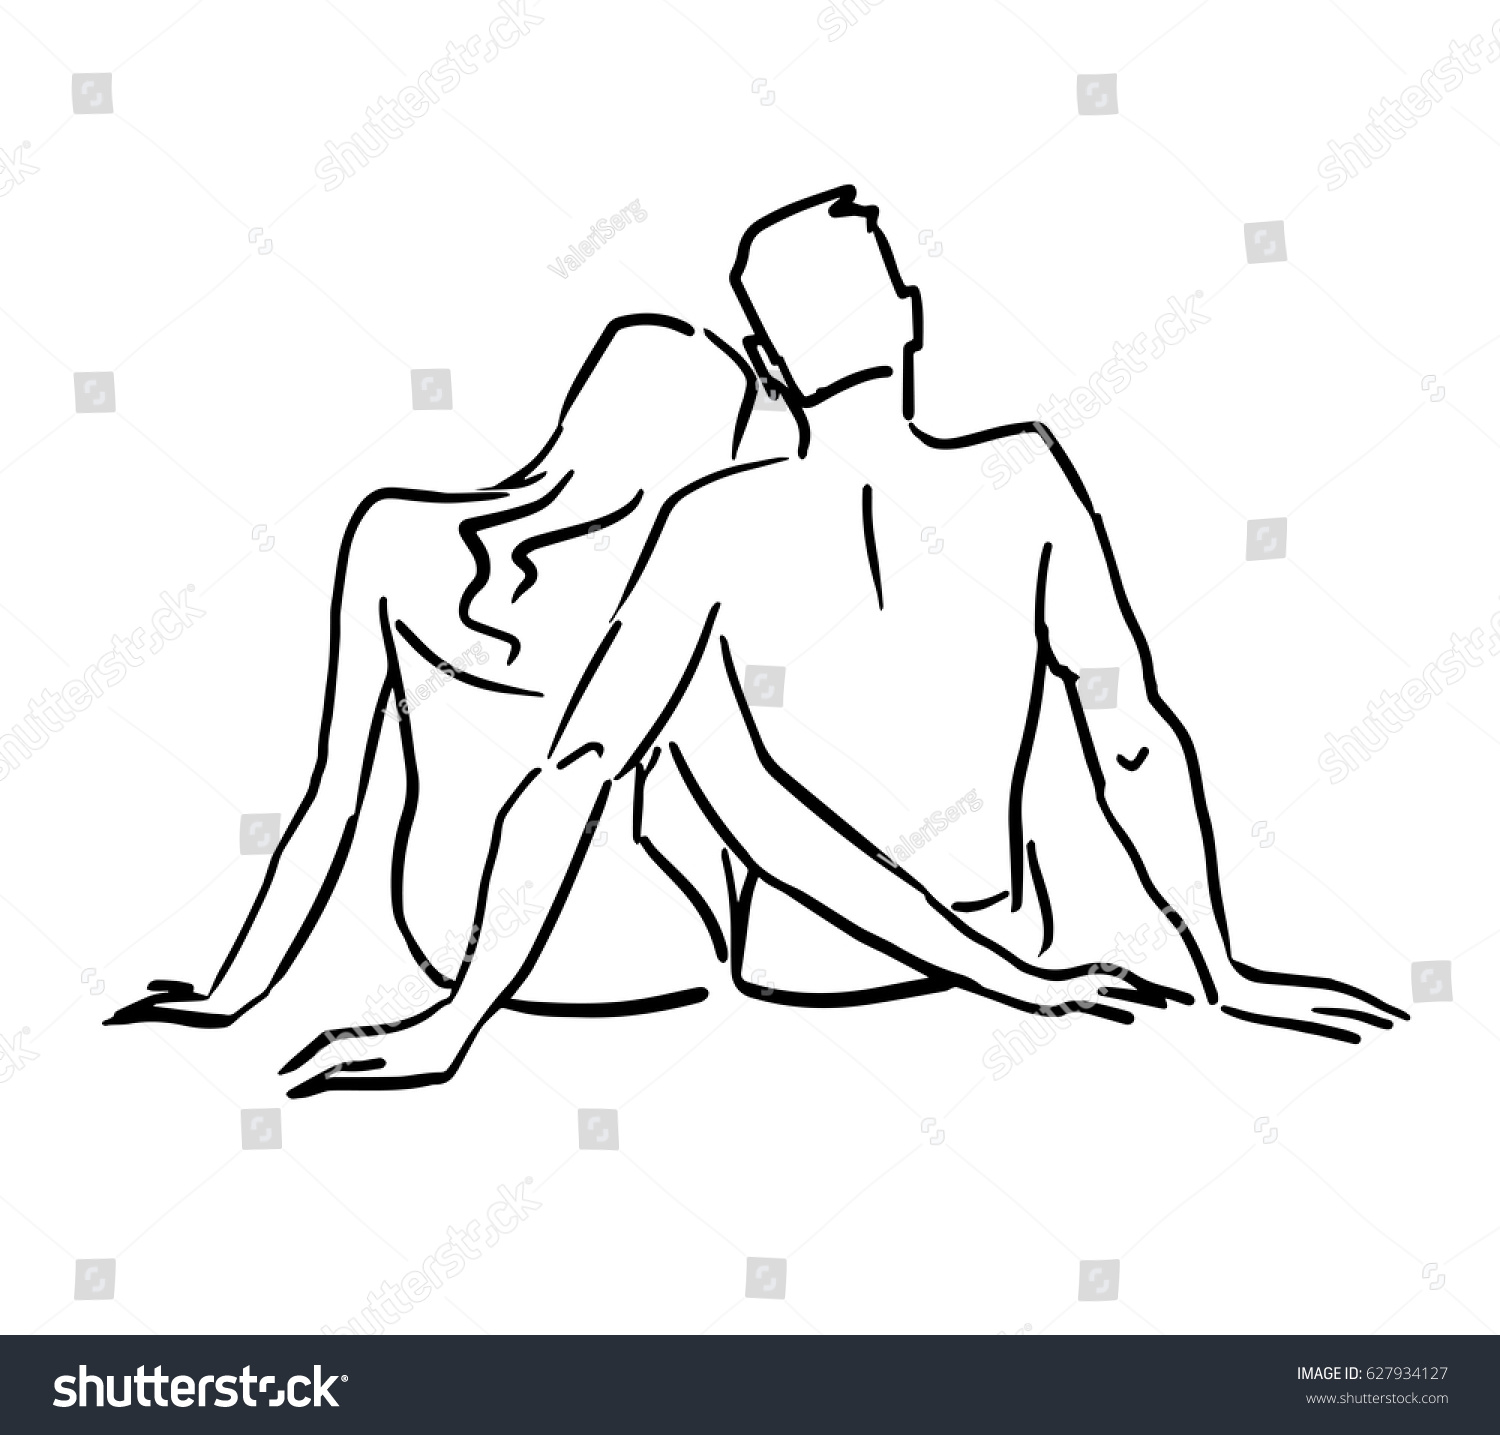 Sketch of the beach couple sitting together on the ground back view man and